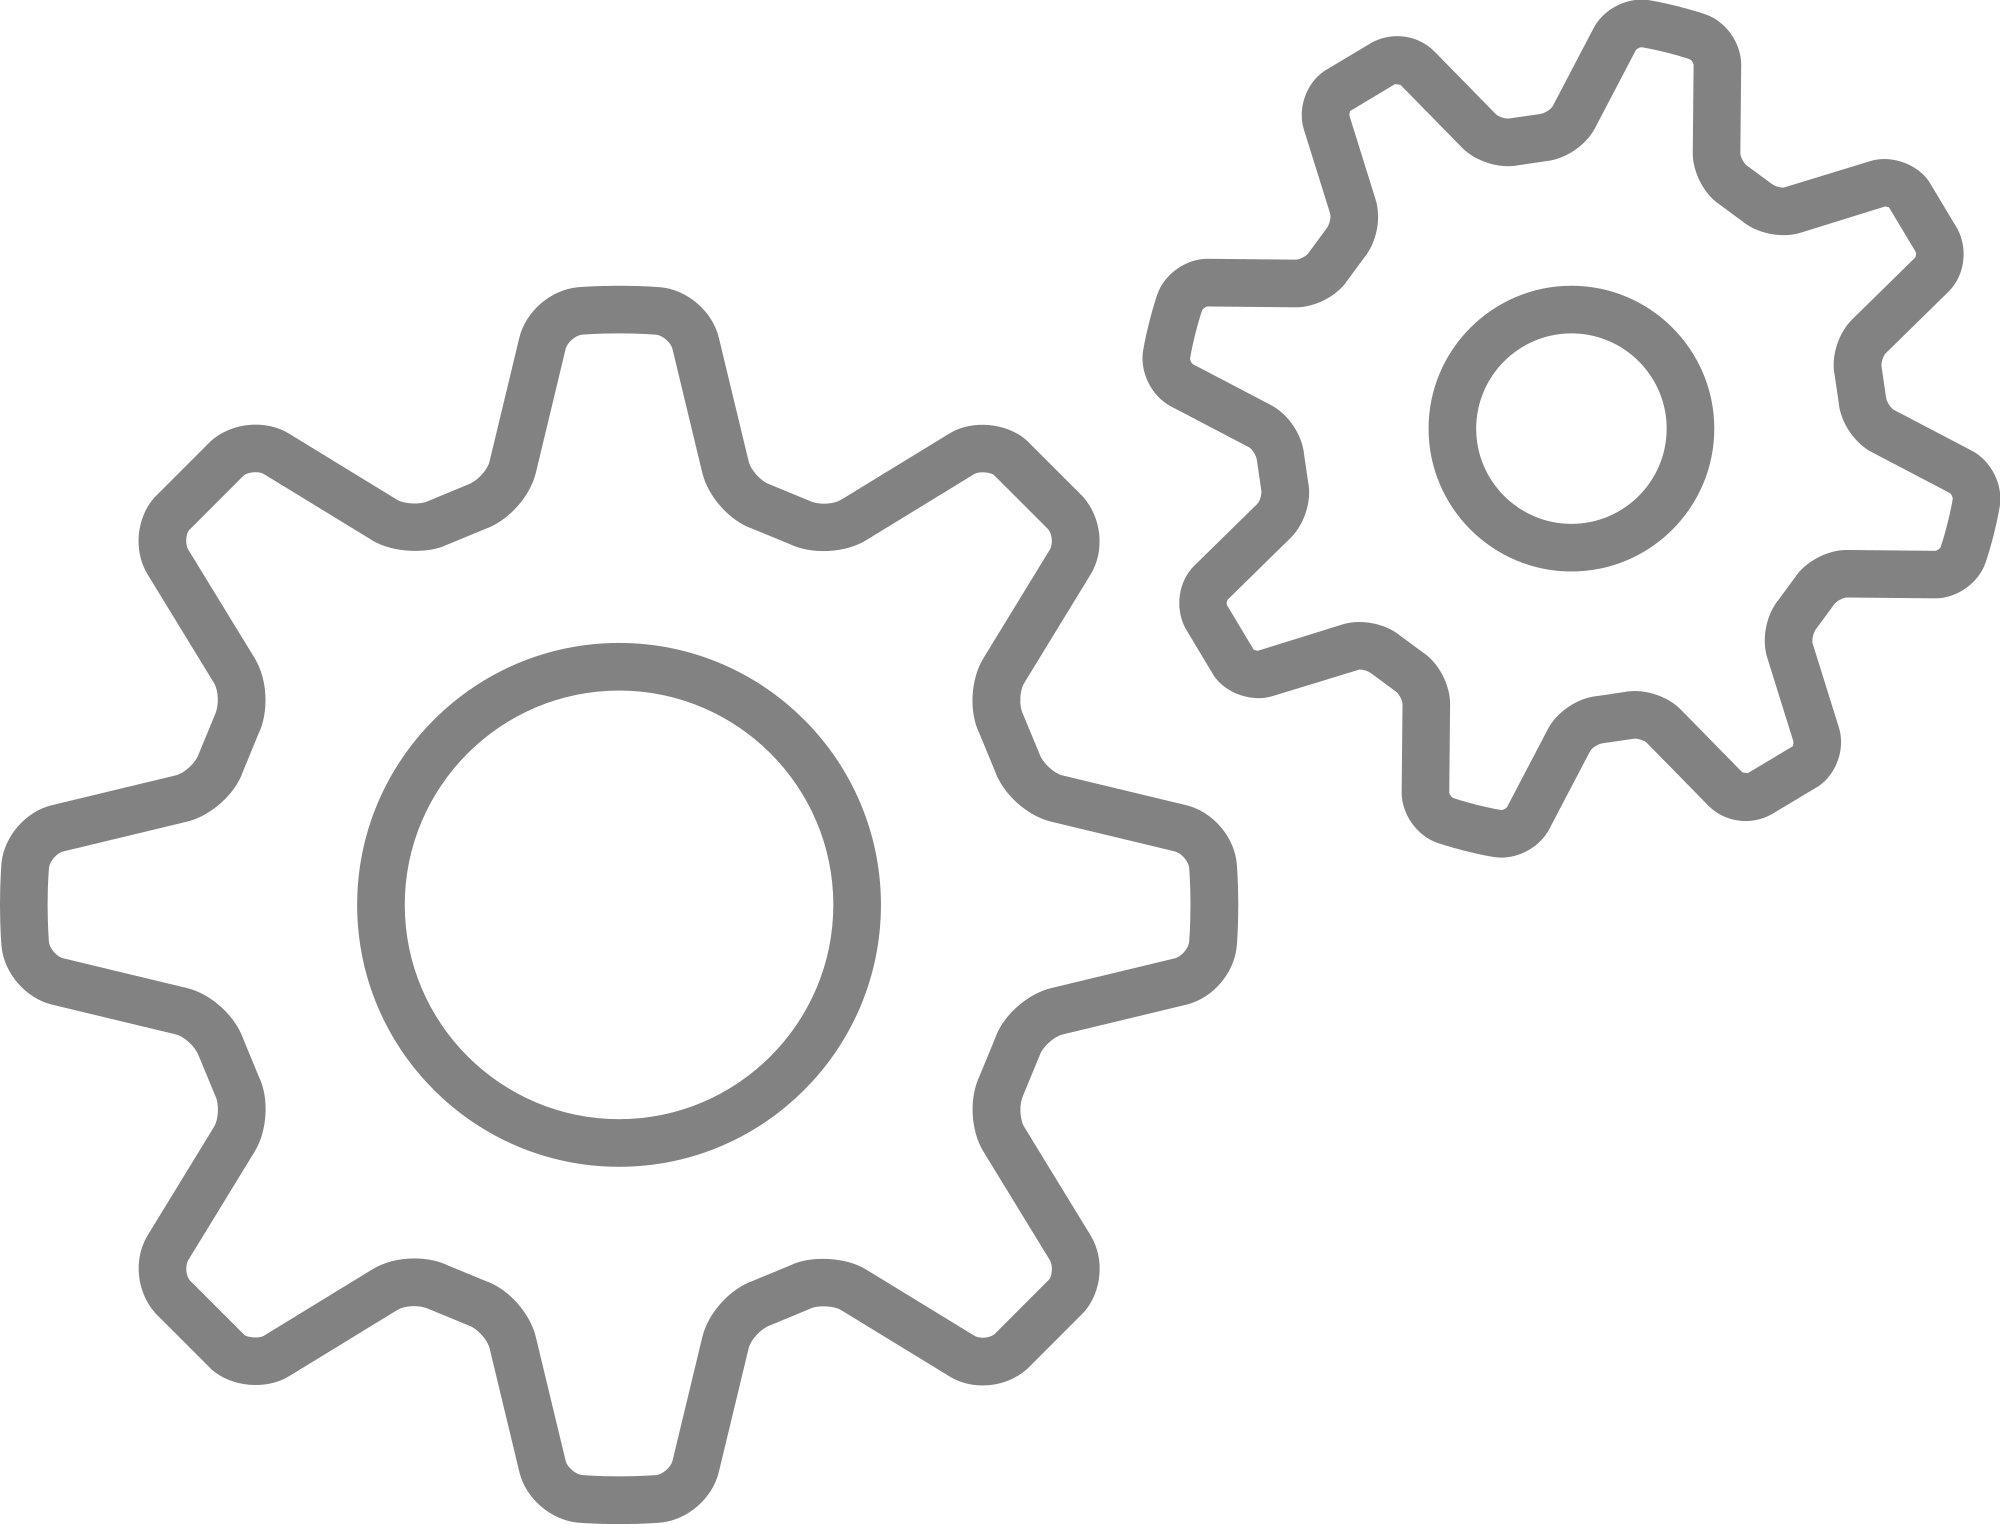 Svg gear line. File style icons gears